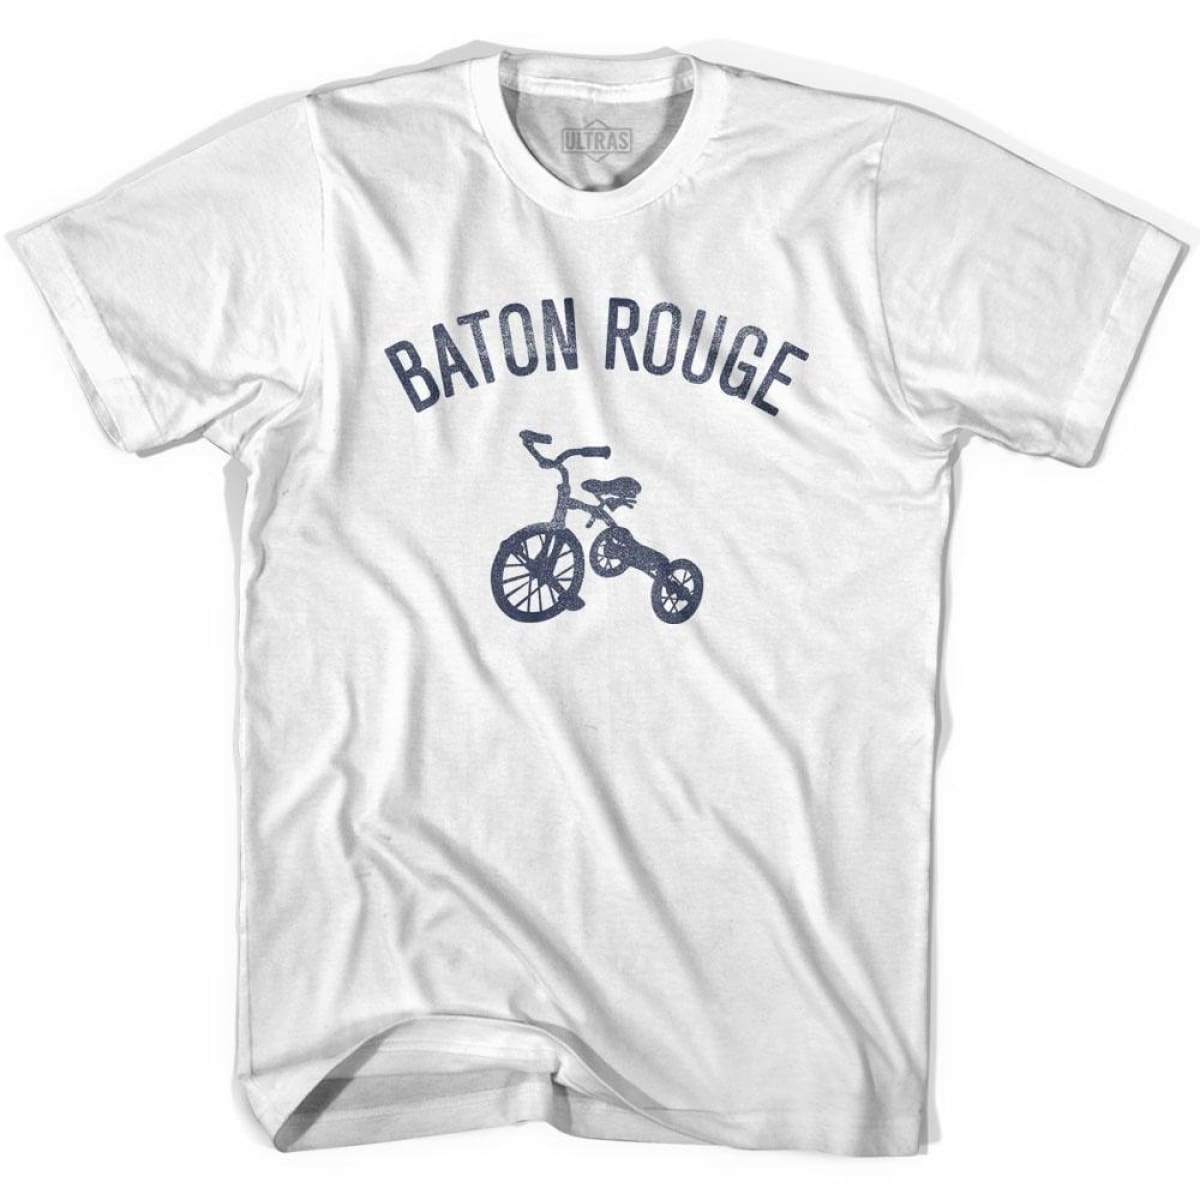 Baton Rouge City Tricycle Youth Cotton T-shirt - Tricycle City